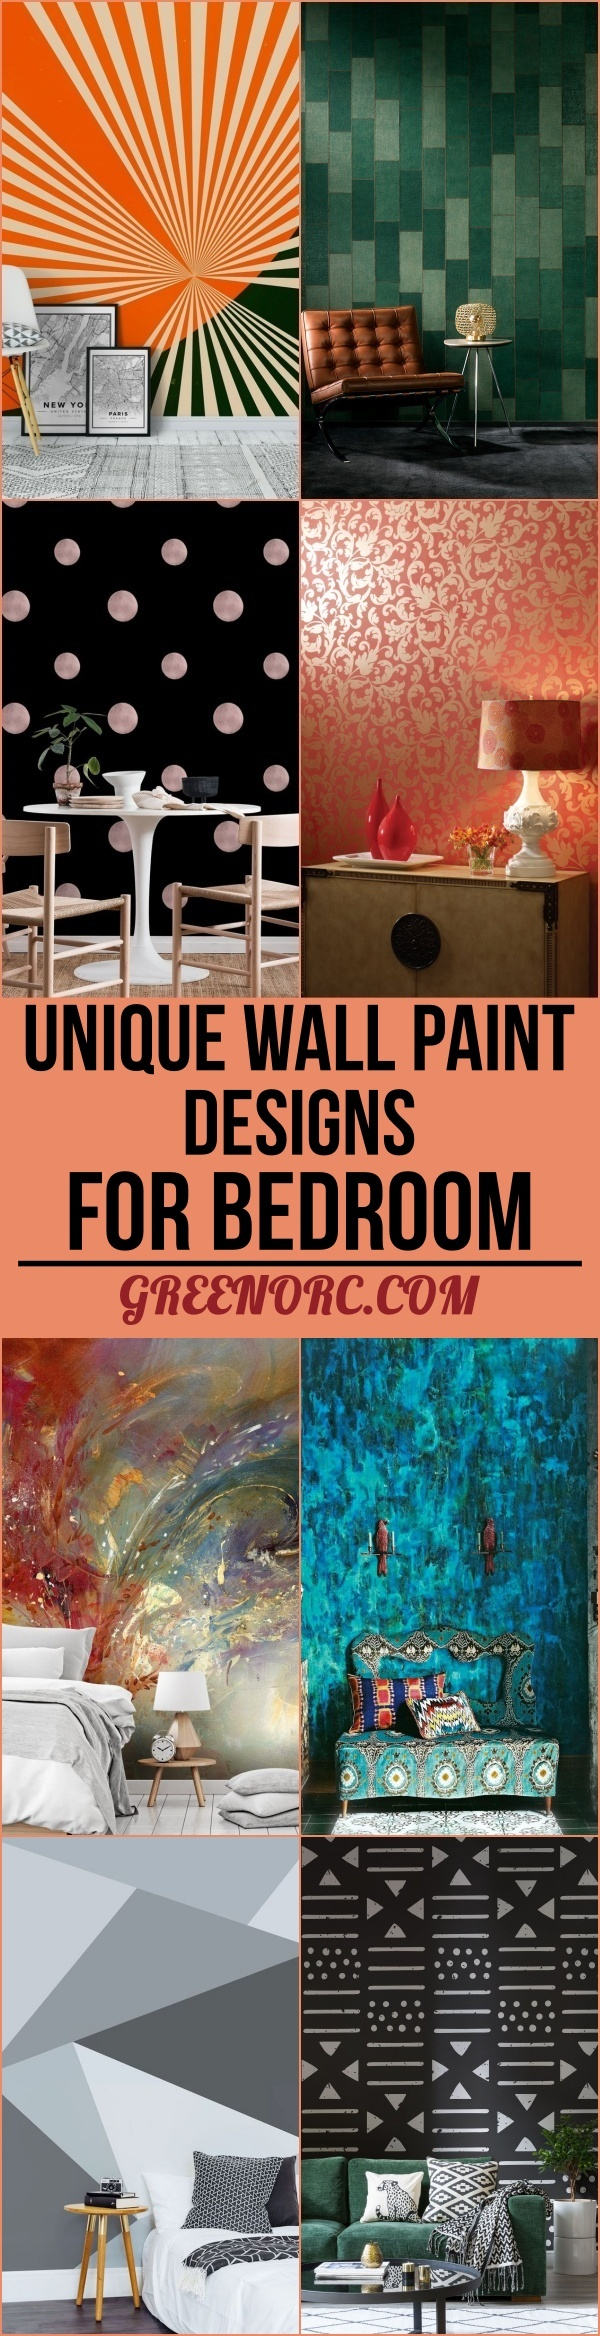 Unique Wall Paint Designs For Bedroom